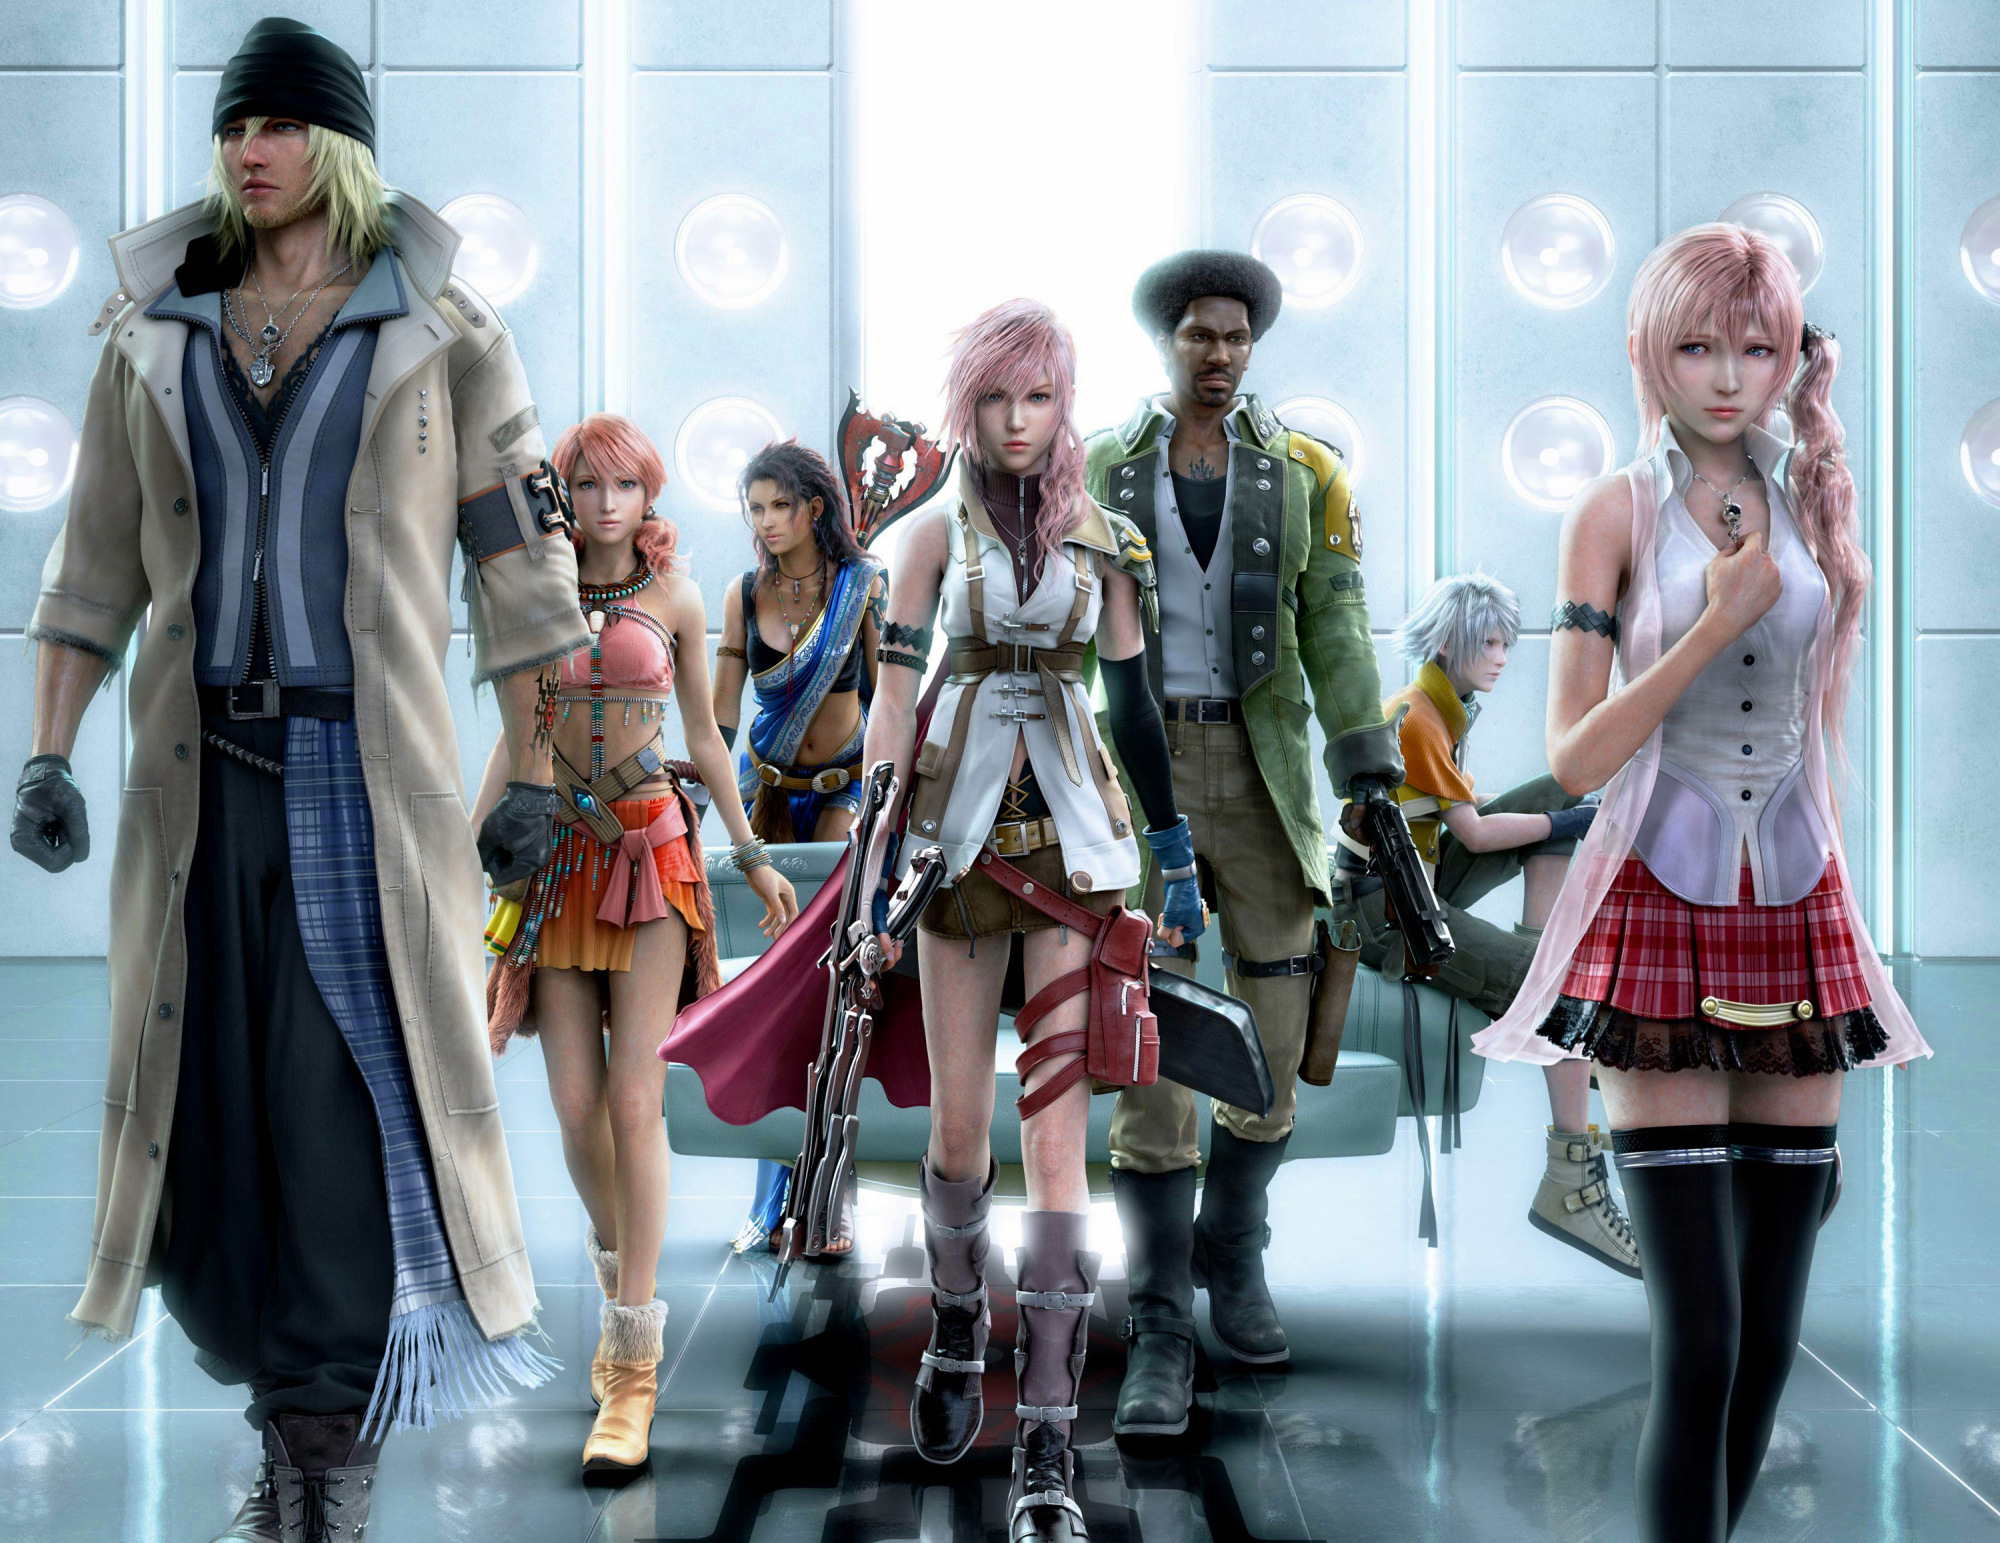 How Final Fantasy Characters Infiltrated Fashion